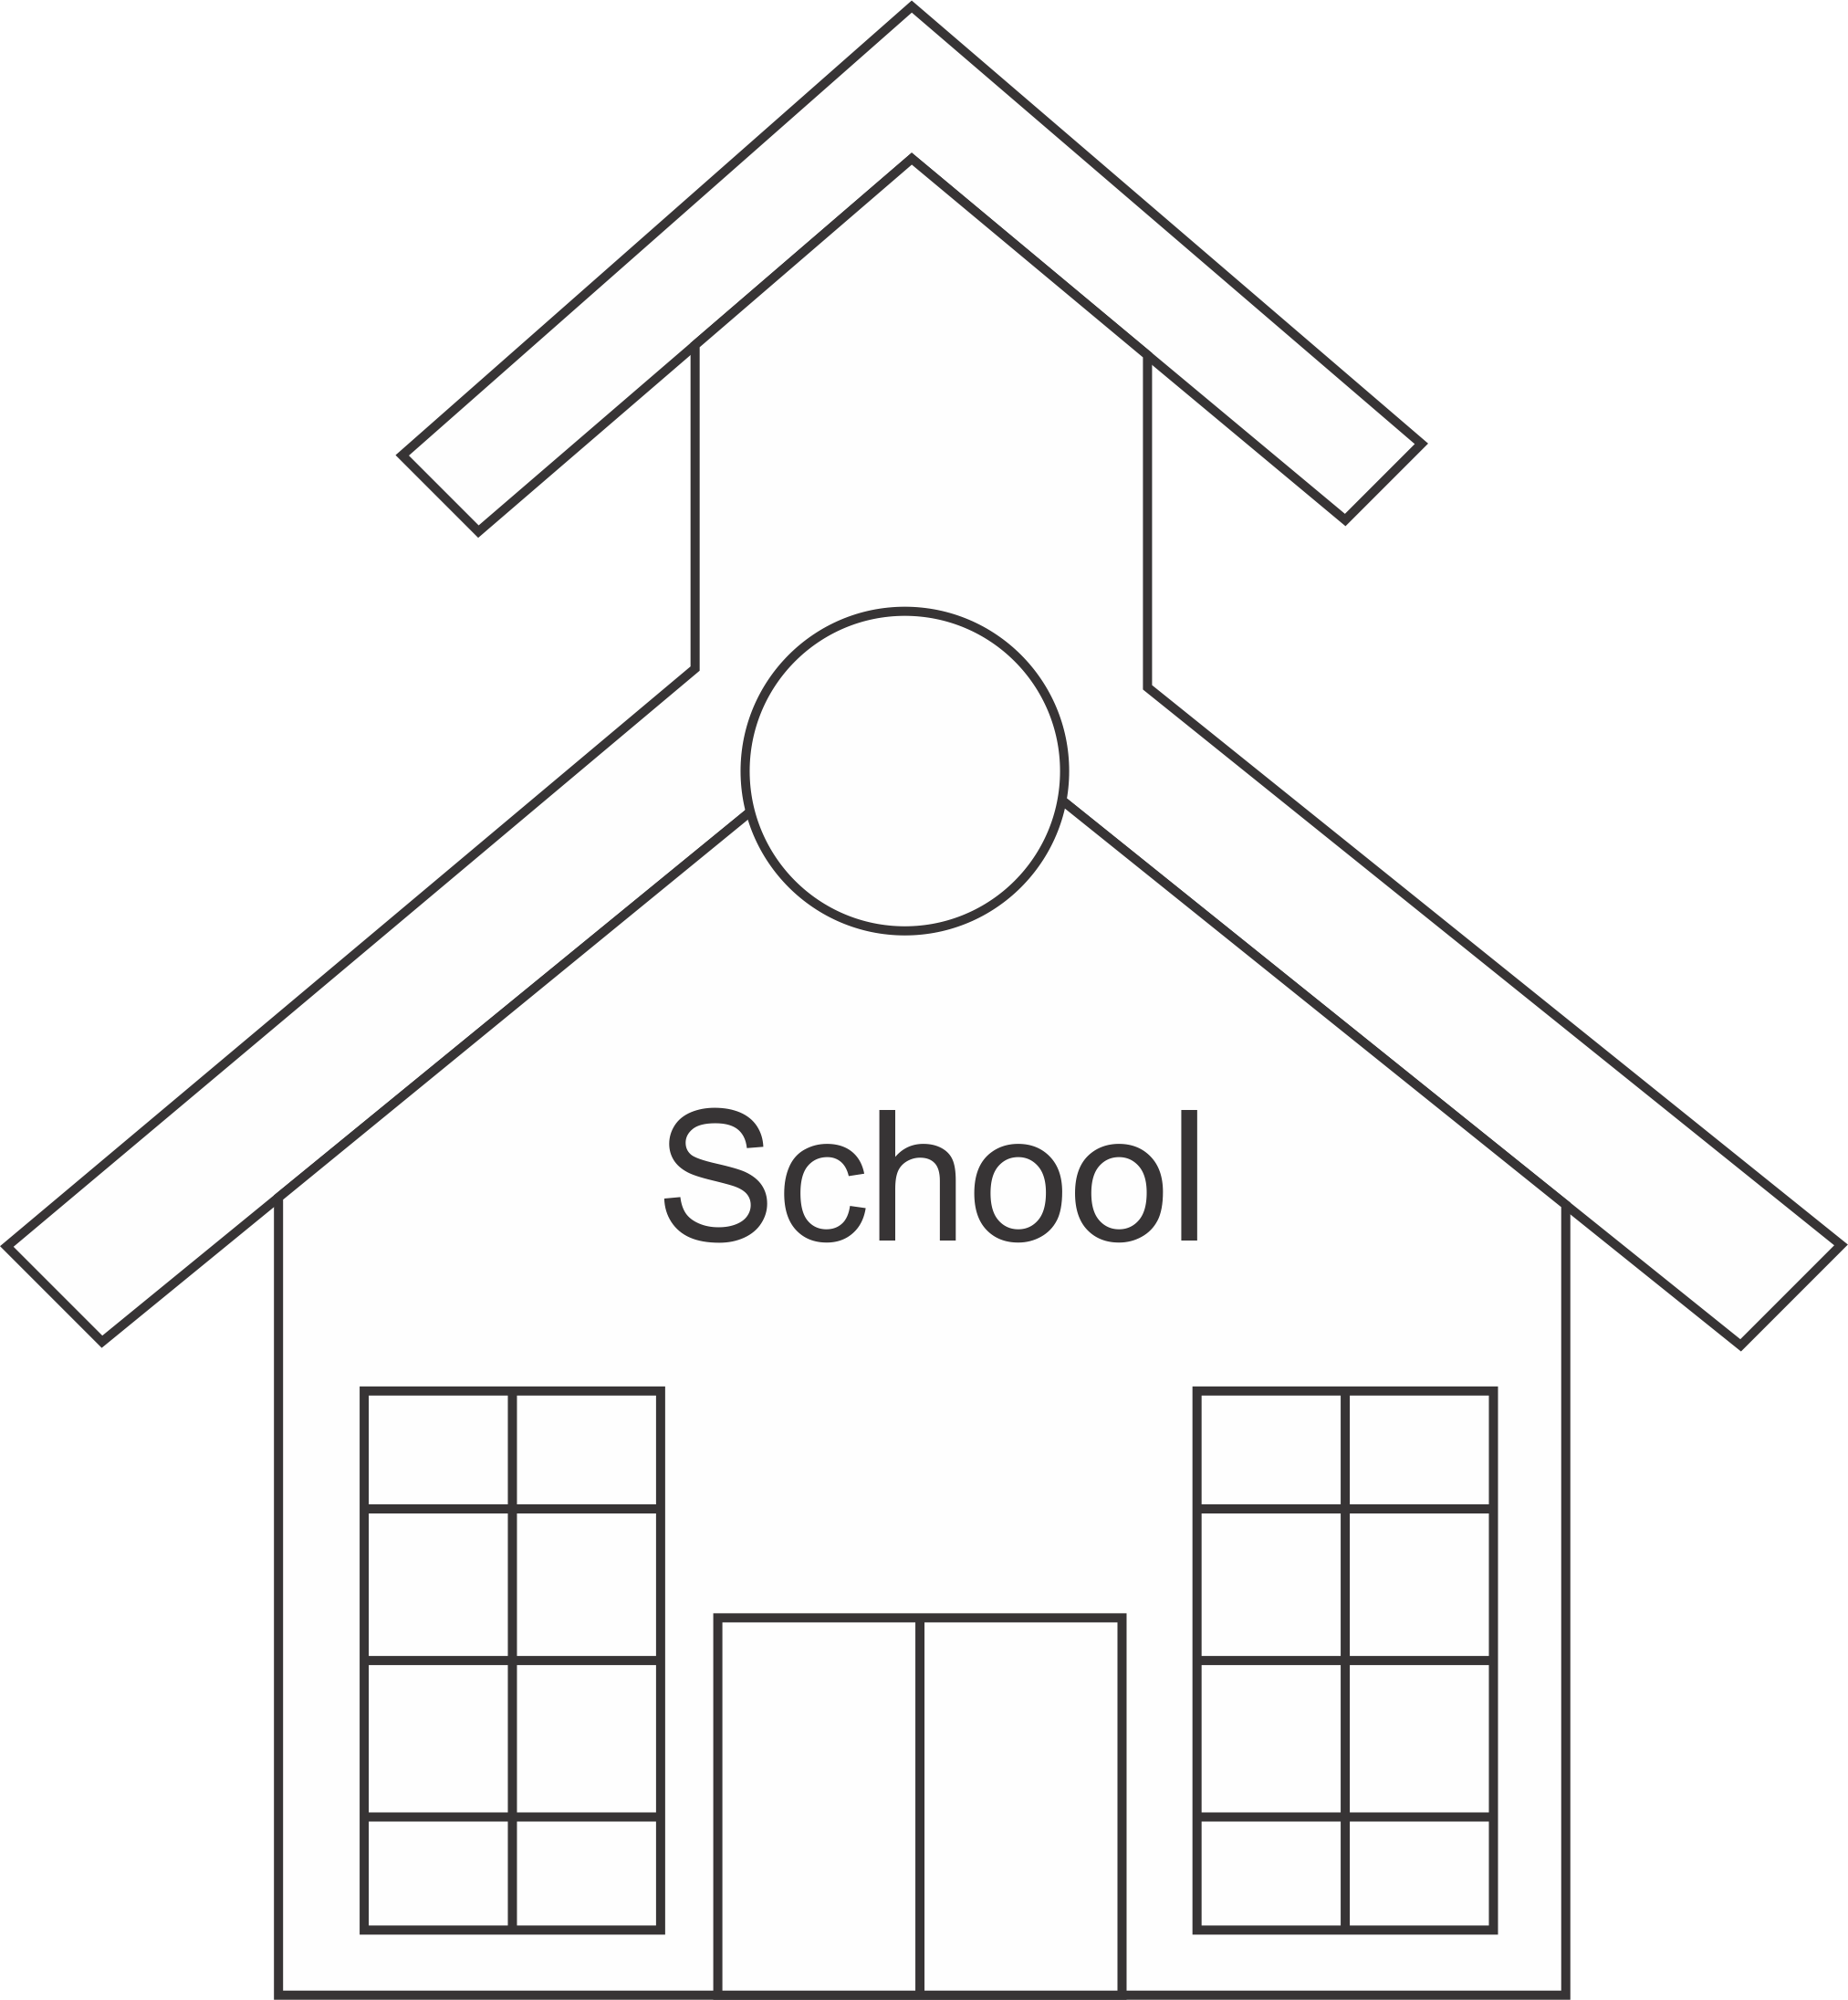 Schoolhouse clipart remedial education. Free school cliparts outline